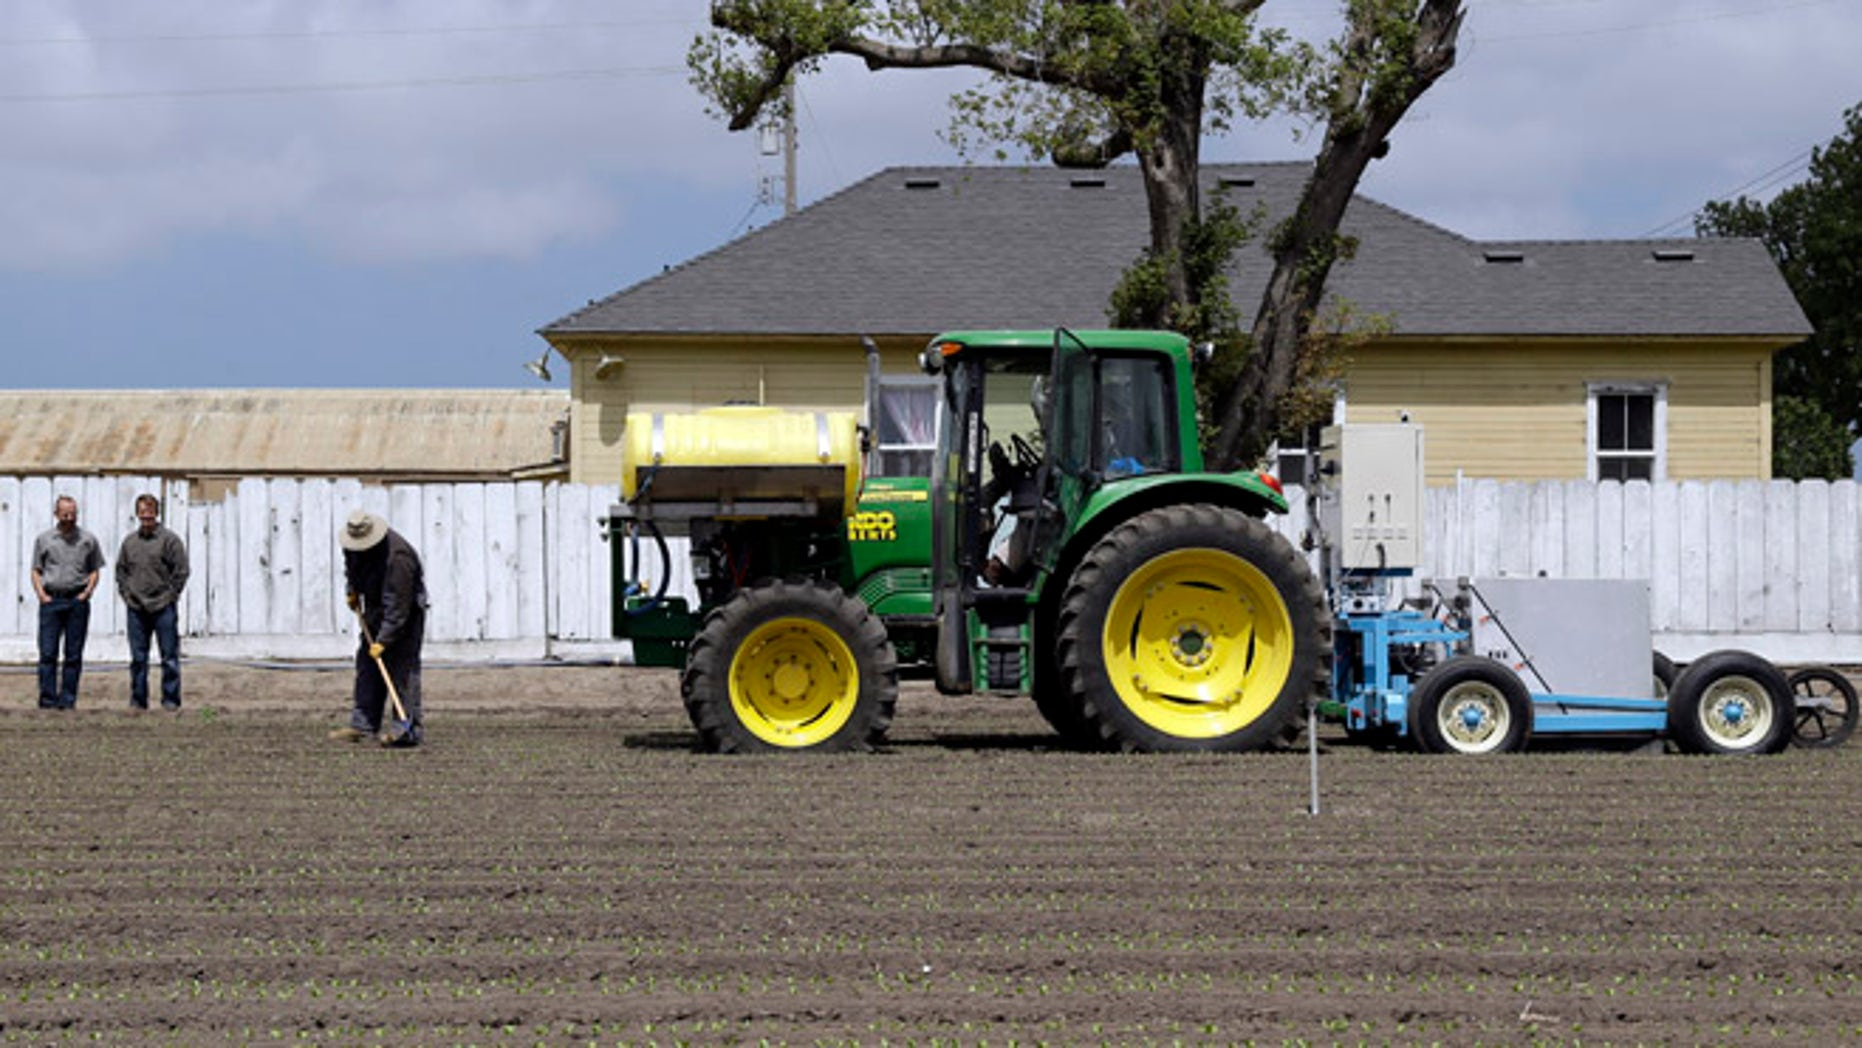 In this May 23, 2013, photo, the lettuce bot is dragged by a tractor during tests in Salinas, Calif. In the Salinas Valley, the lettuce capital of the world, entrepreneurs with the Silicon Valley company Blue River Technology are testing the Lettuce Bot, a boxy robotic machine that can thin fields of lettuce, a job that now requires detailed hand work by 20 farm workers.